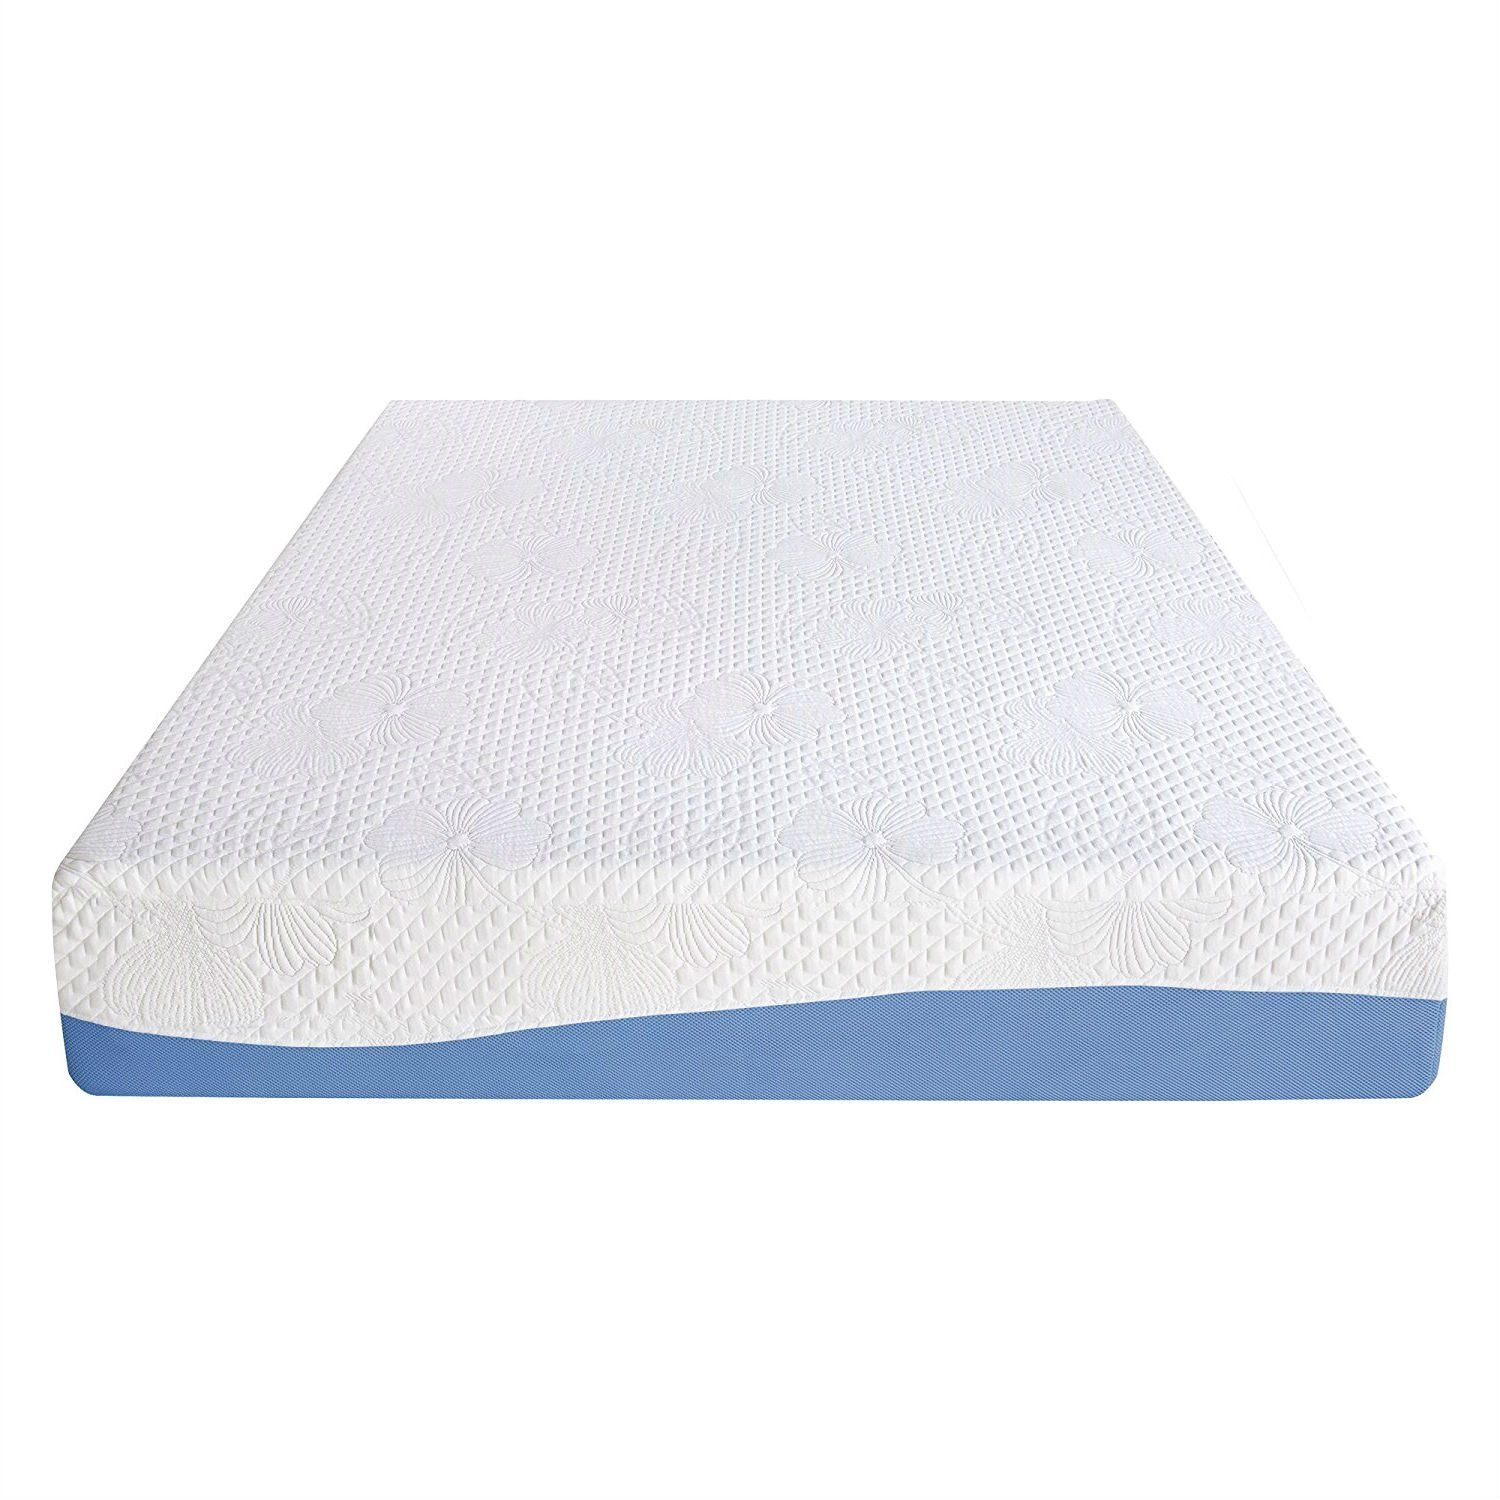 king size 10 inch memory foam mattress with gel infused comforter